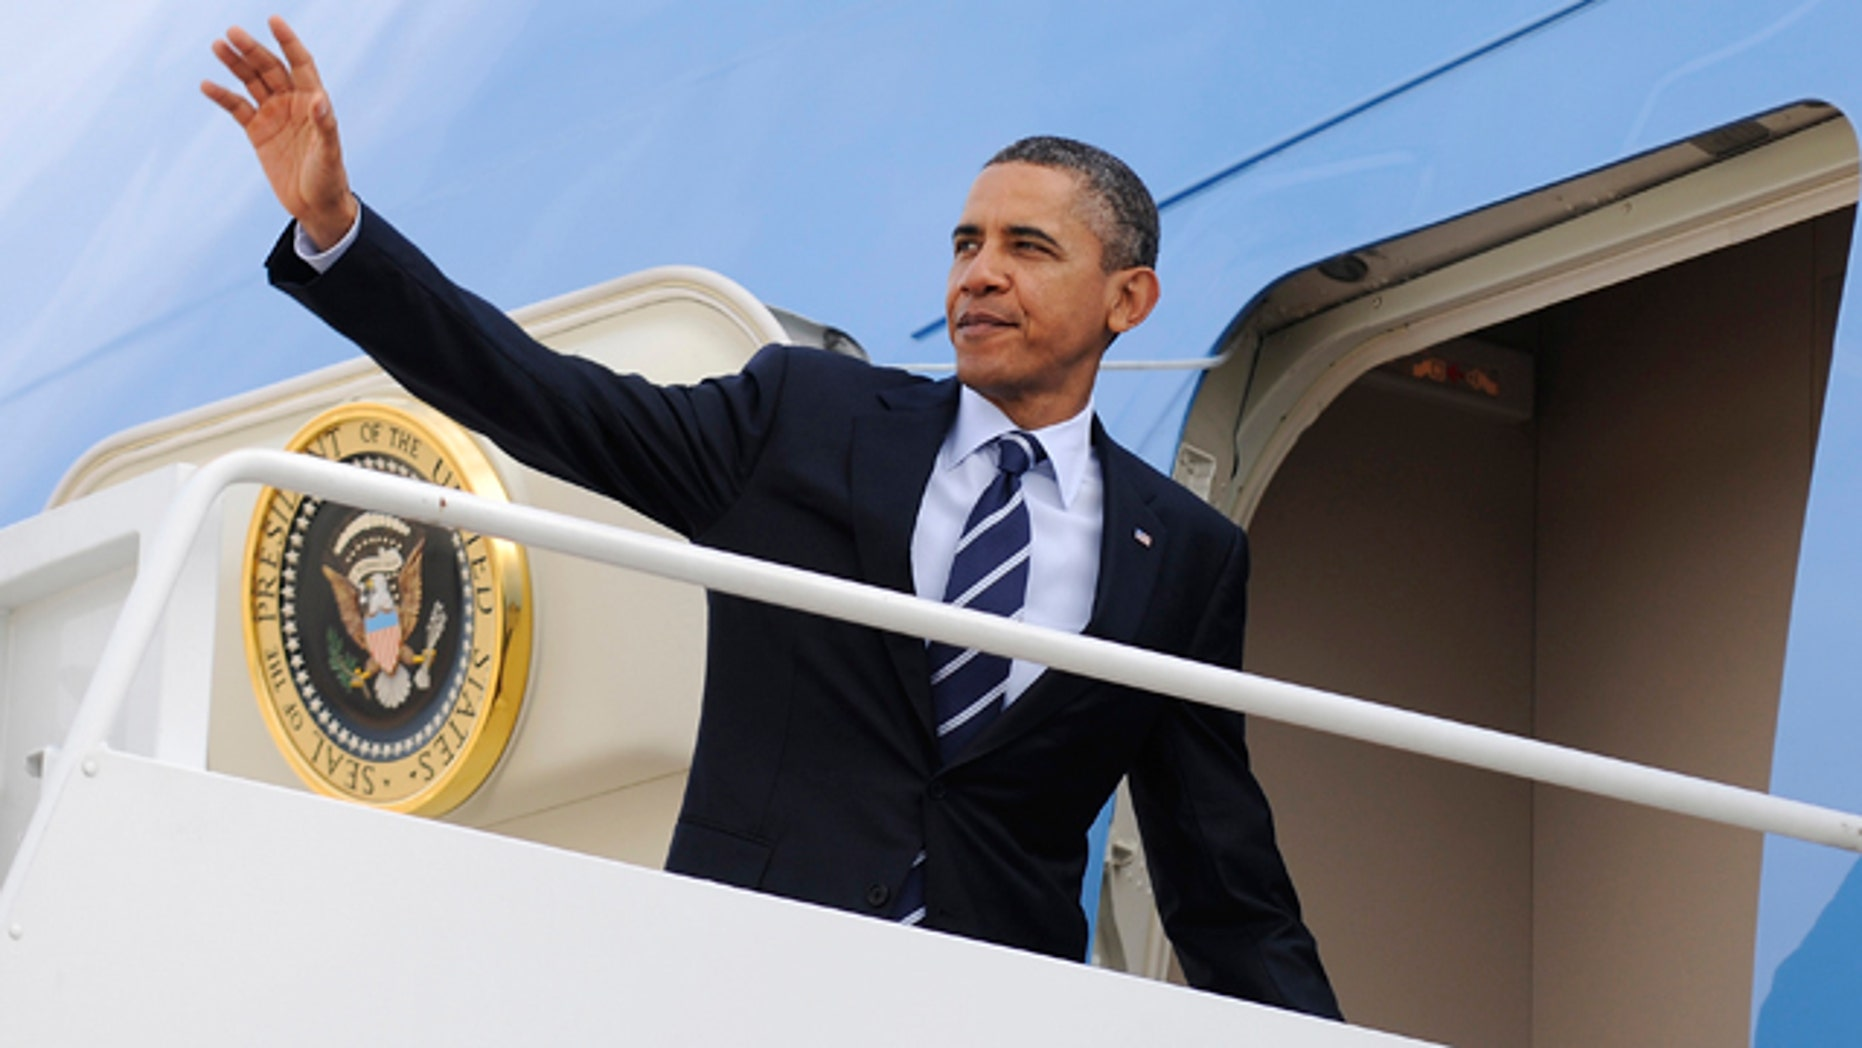 President Obama's travels aboard Air Force One require strict security.